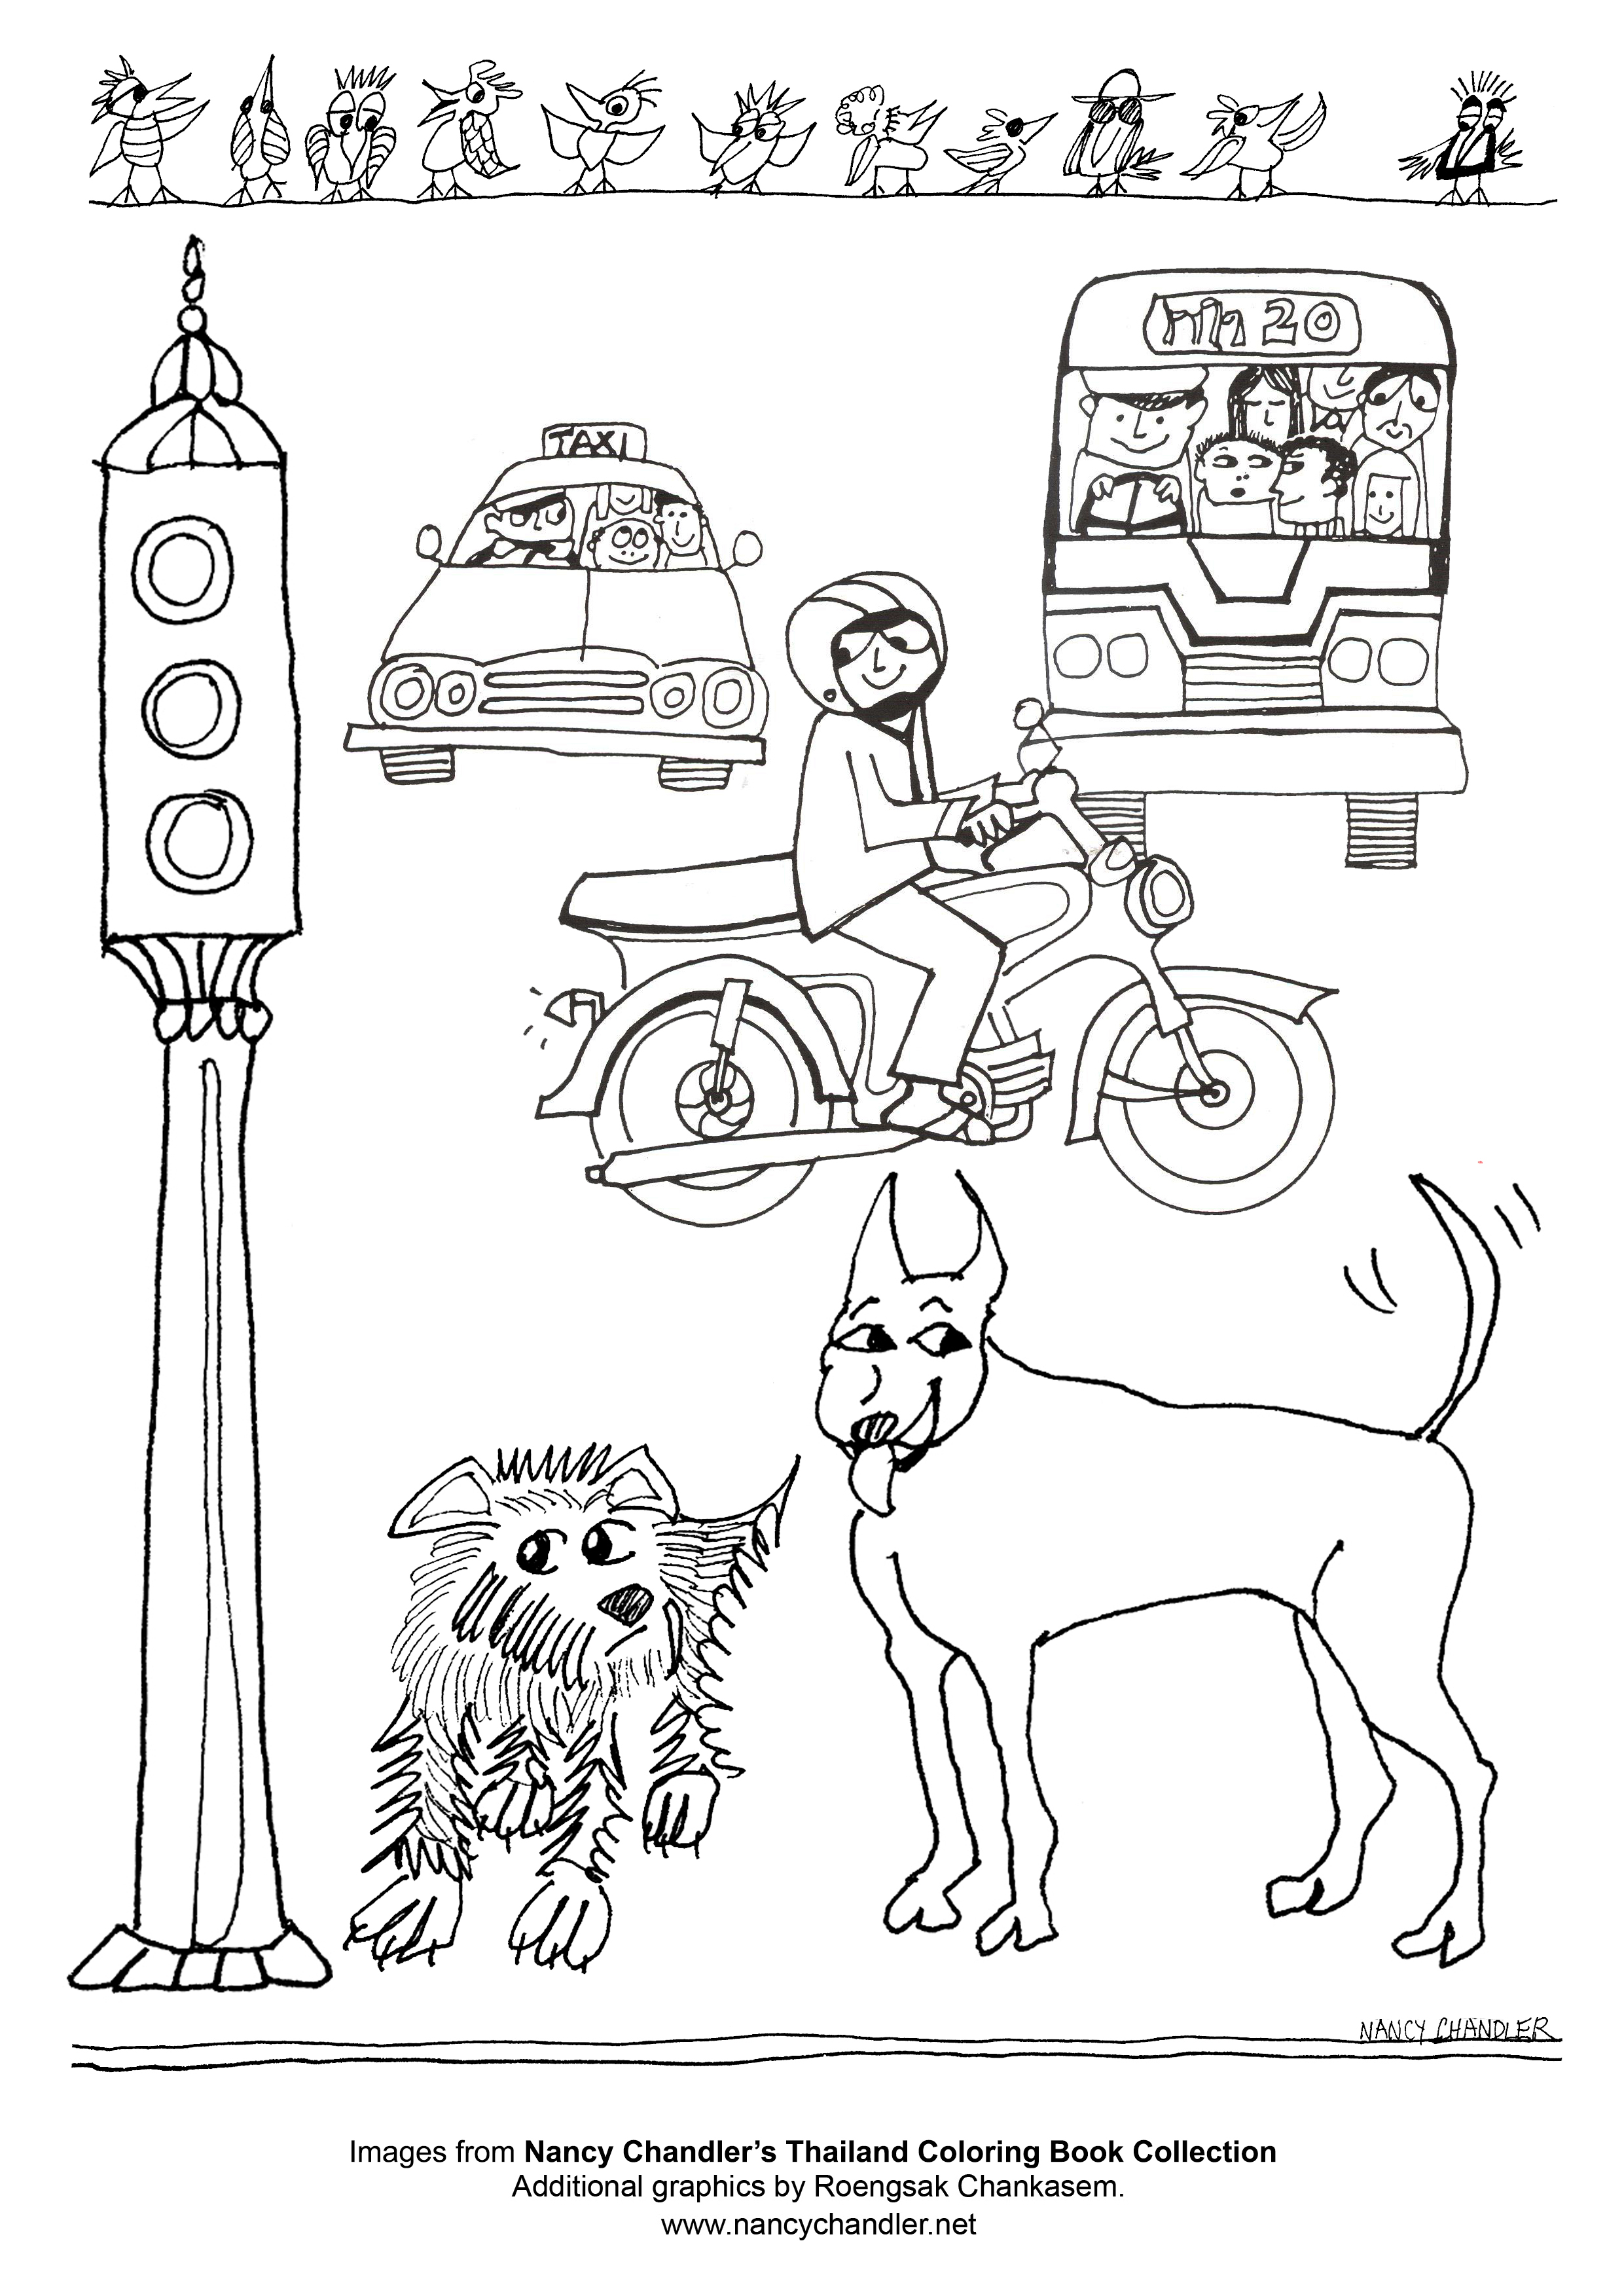 street scene coloring pages - photo#12